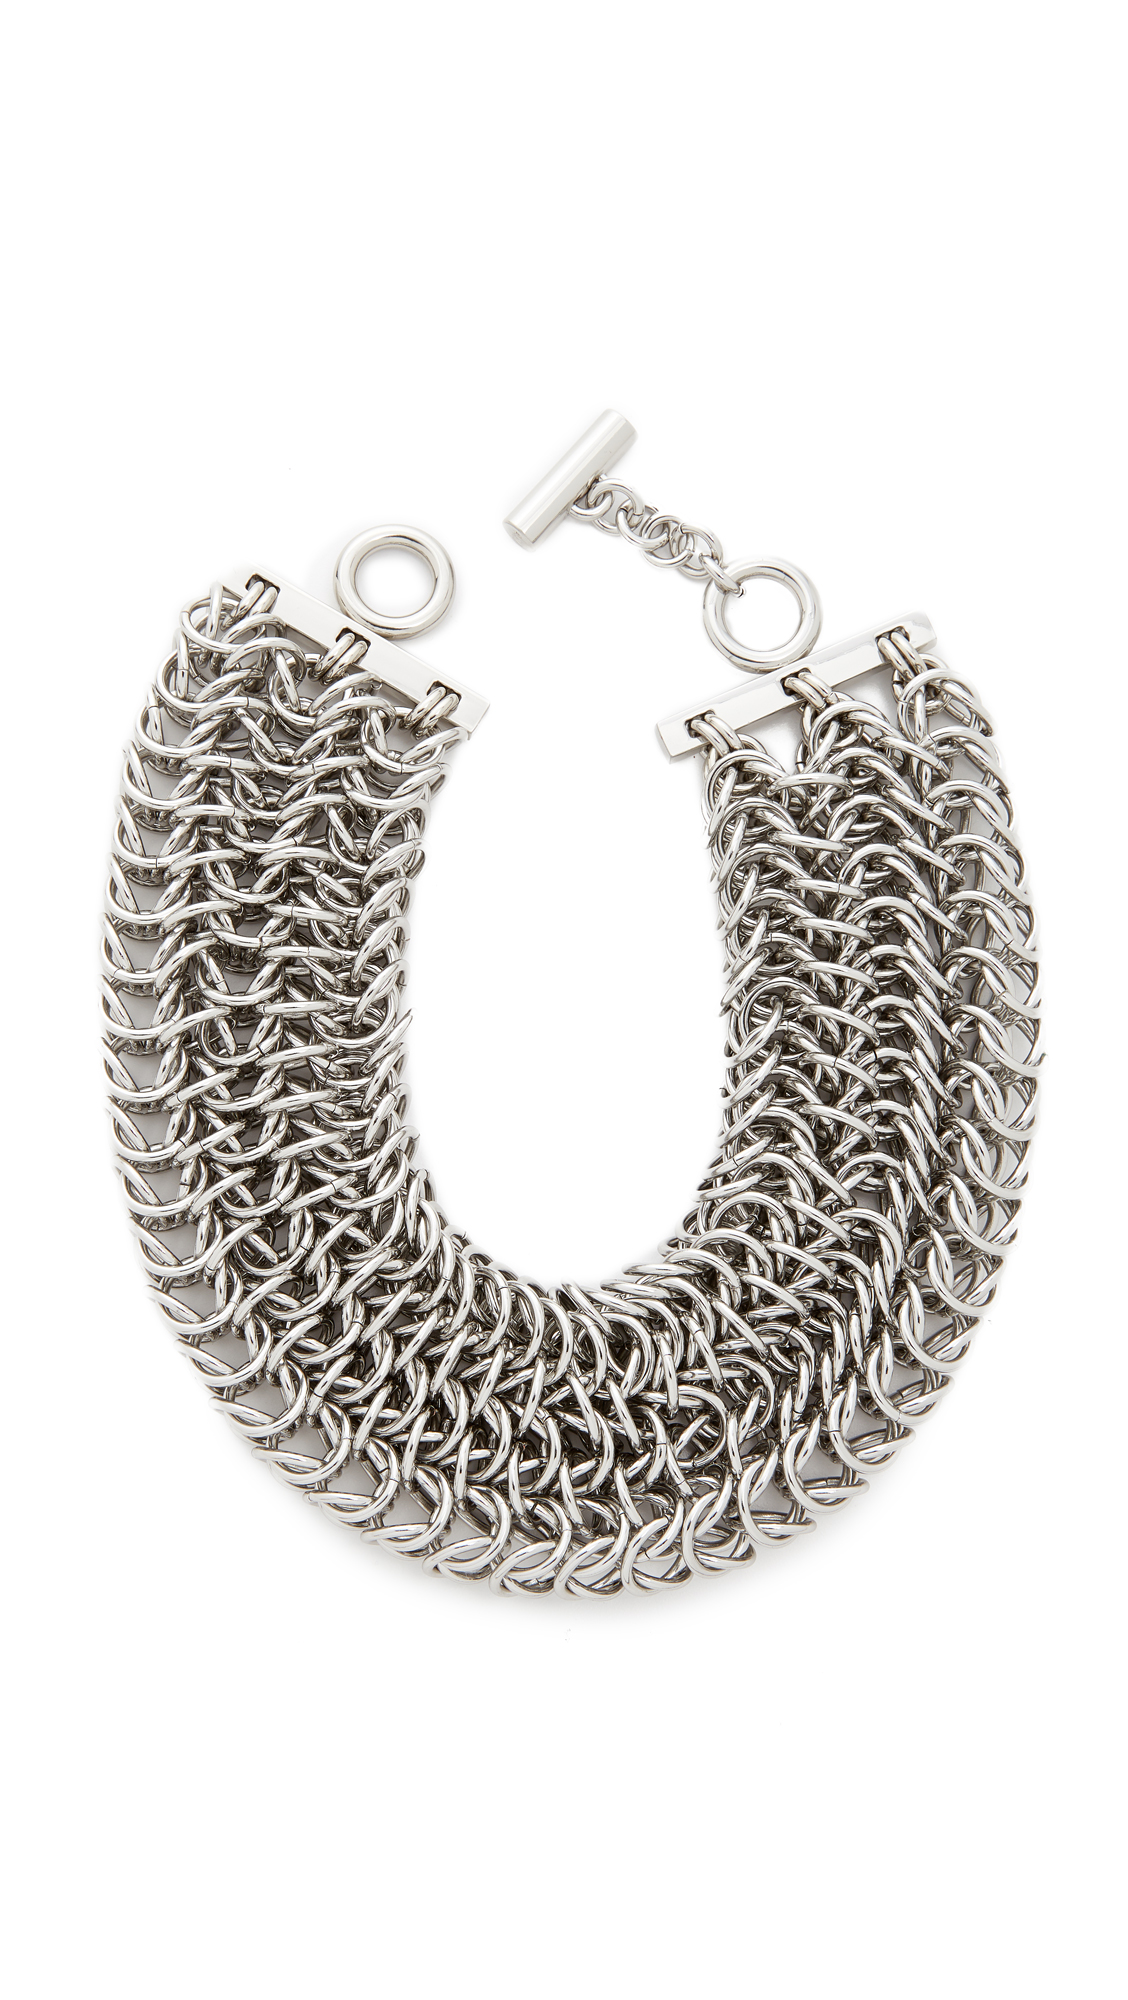 Alexander Wang 3 Row Box Chain Necklace - Silver